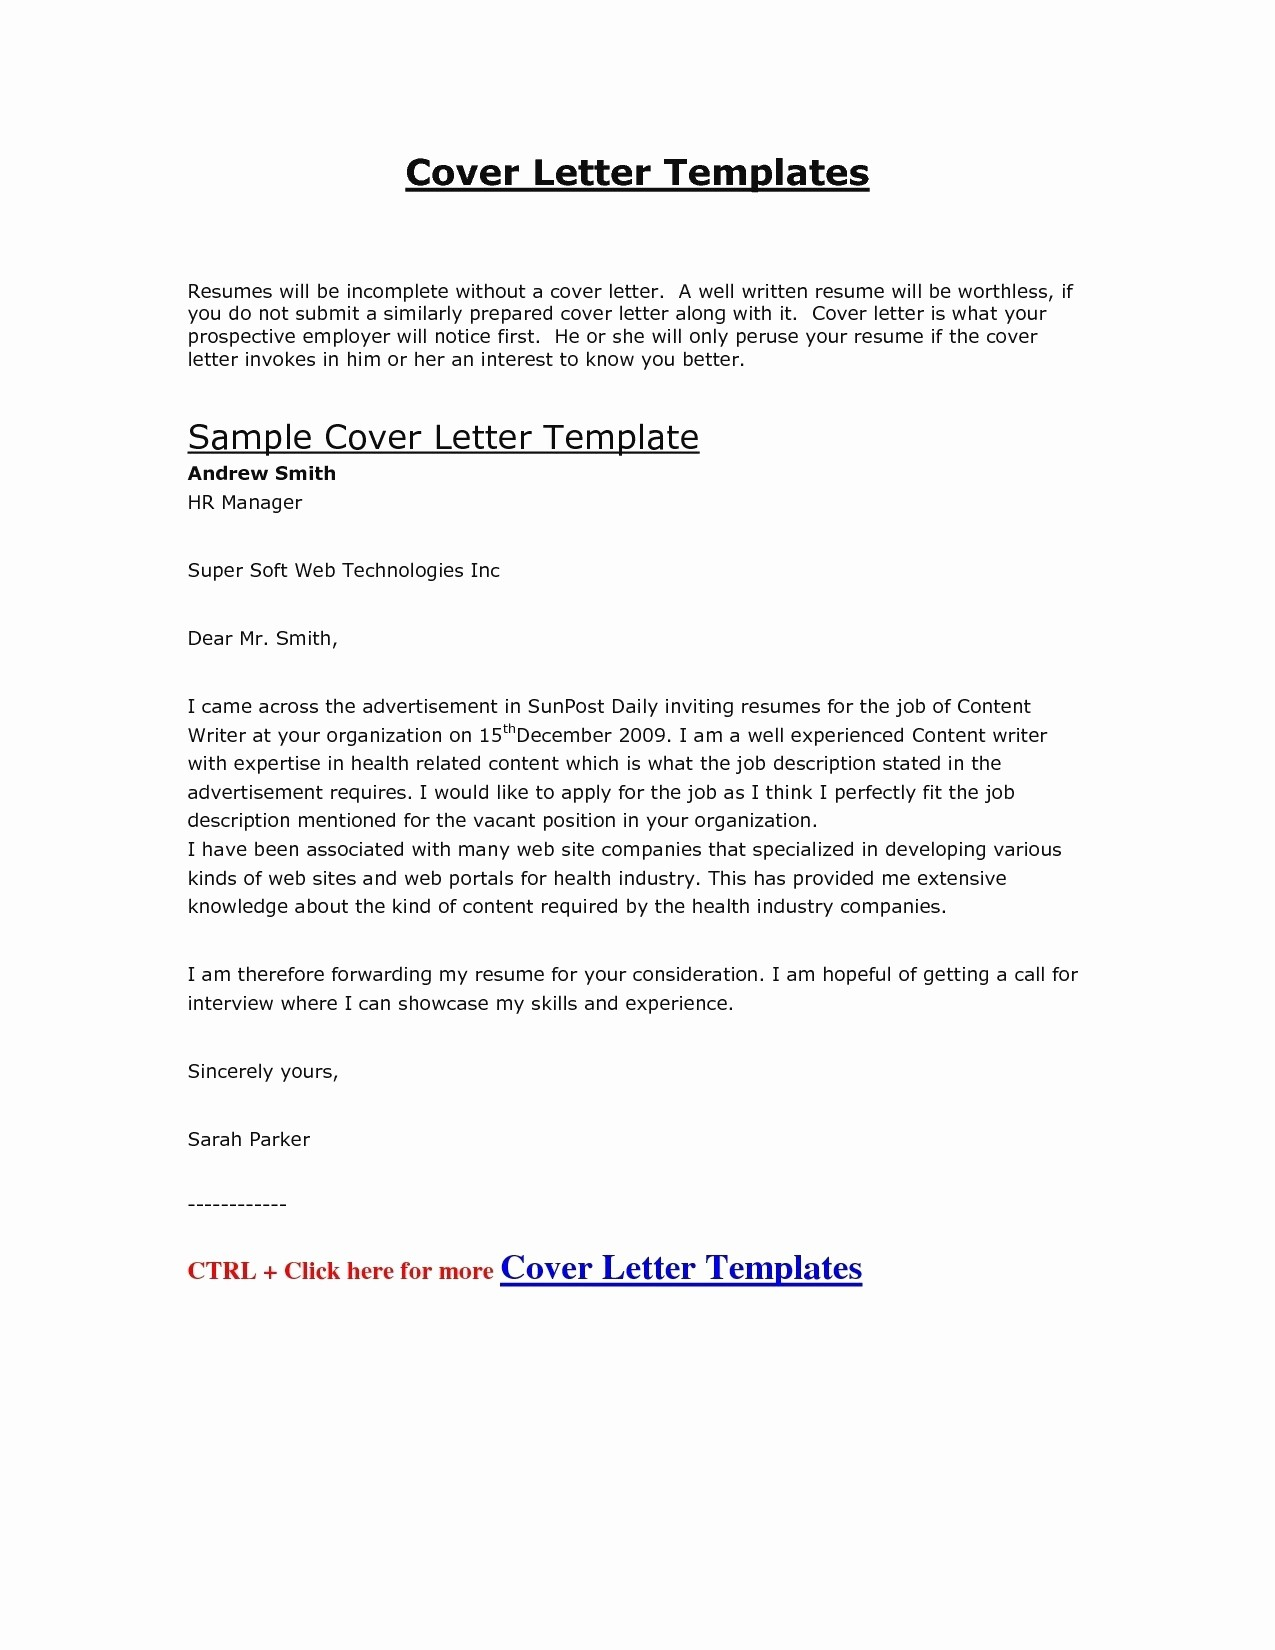 Job Cover Letter Template - Job Application Letter format Template Copy Cover Letter Template Hr